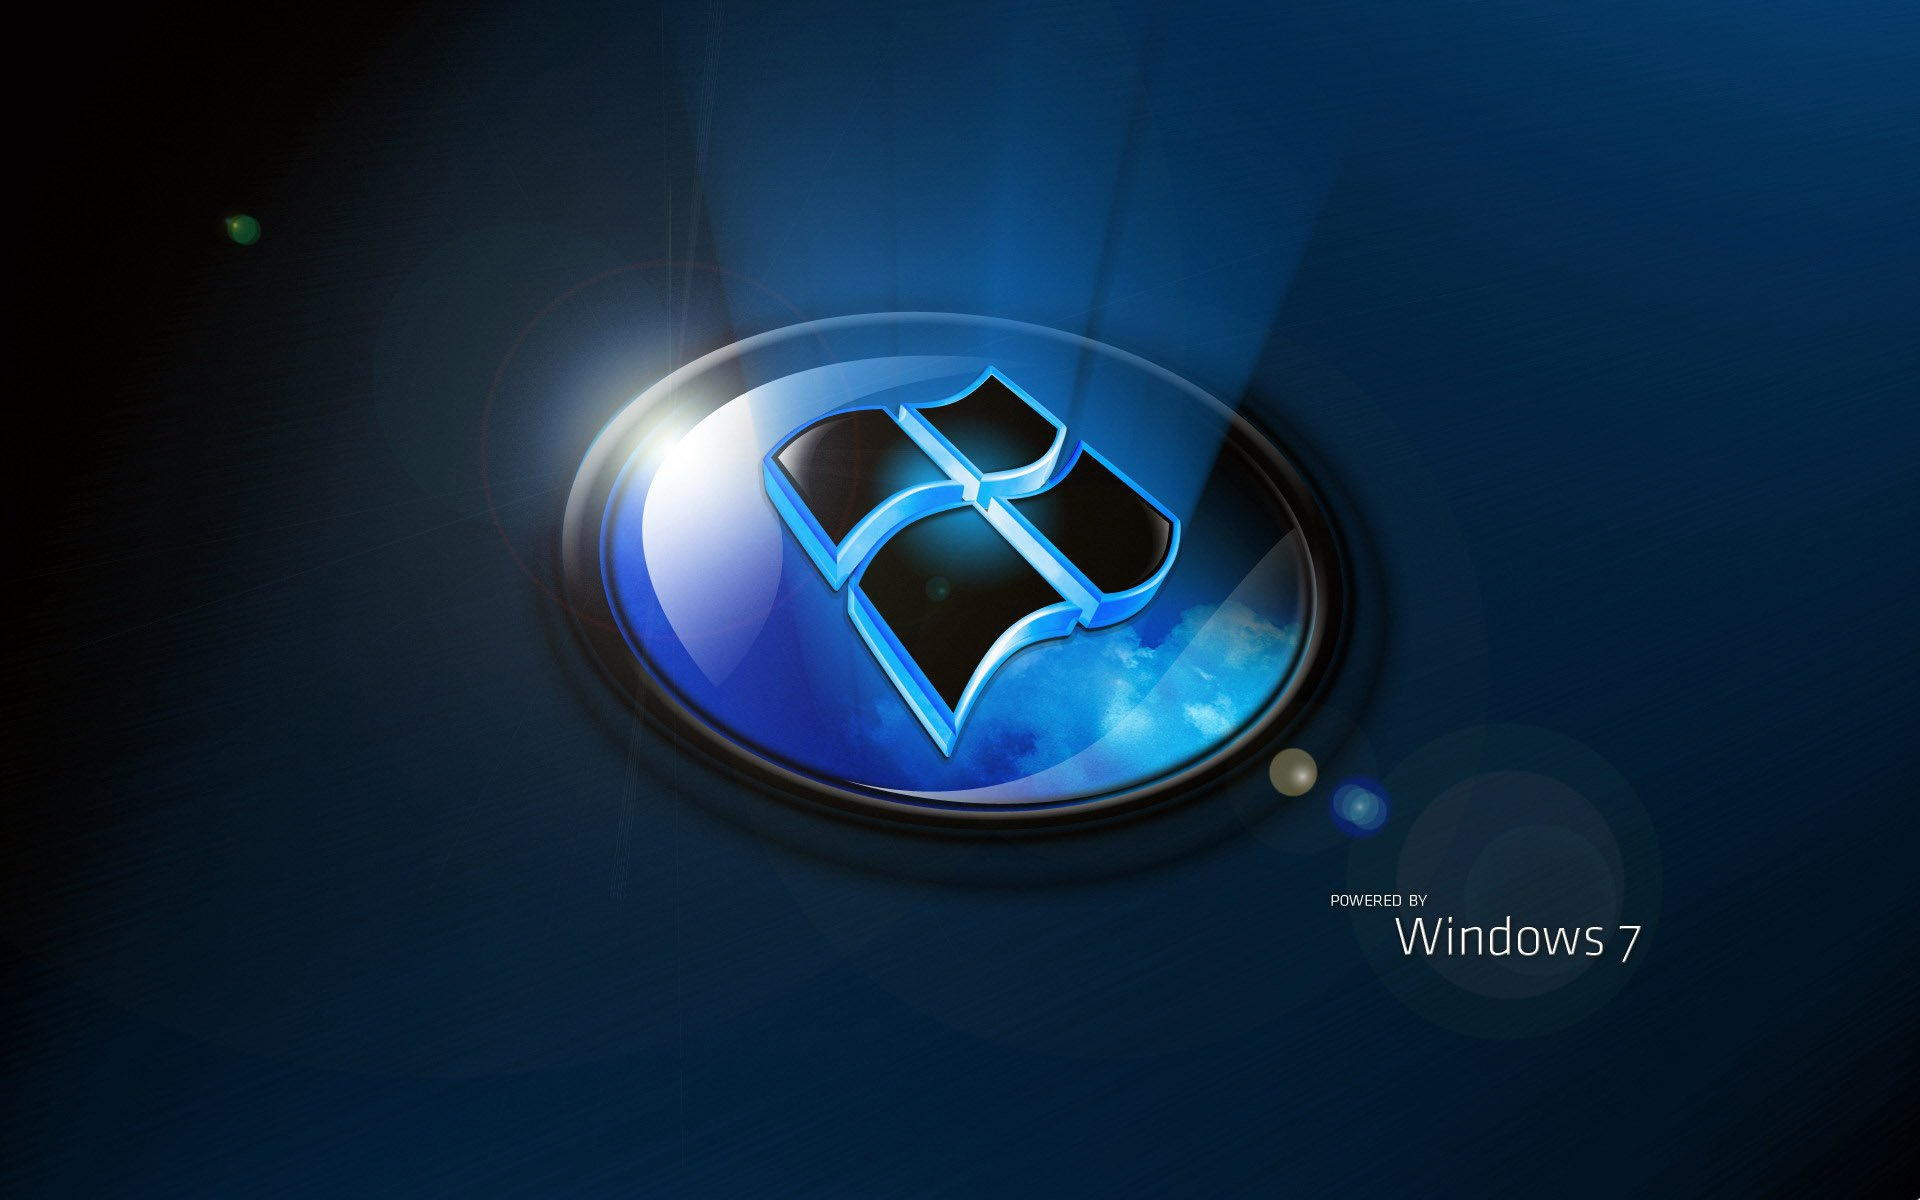 Wallpapers Windows 7 Wallpapers 1920x1200